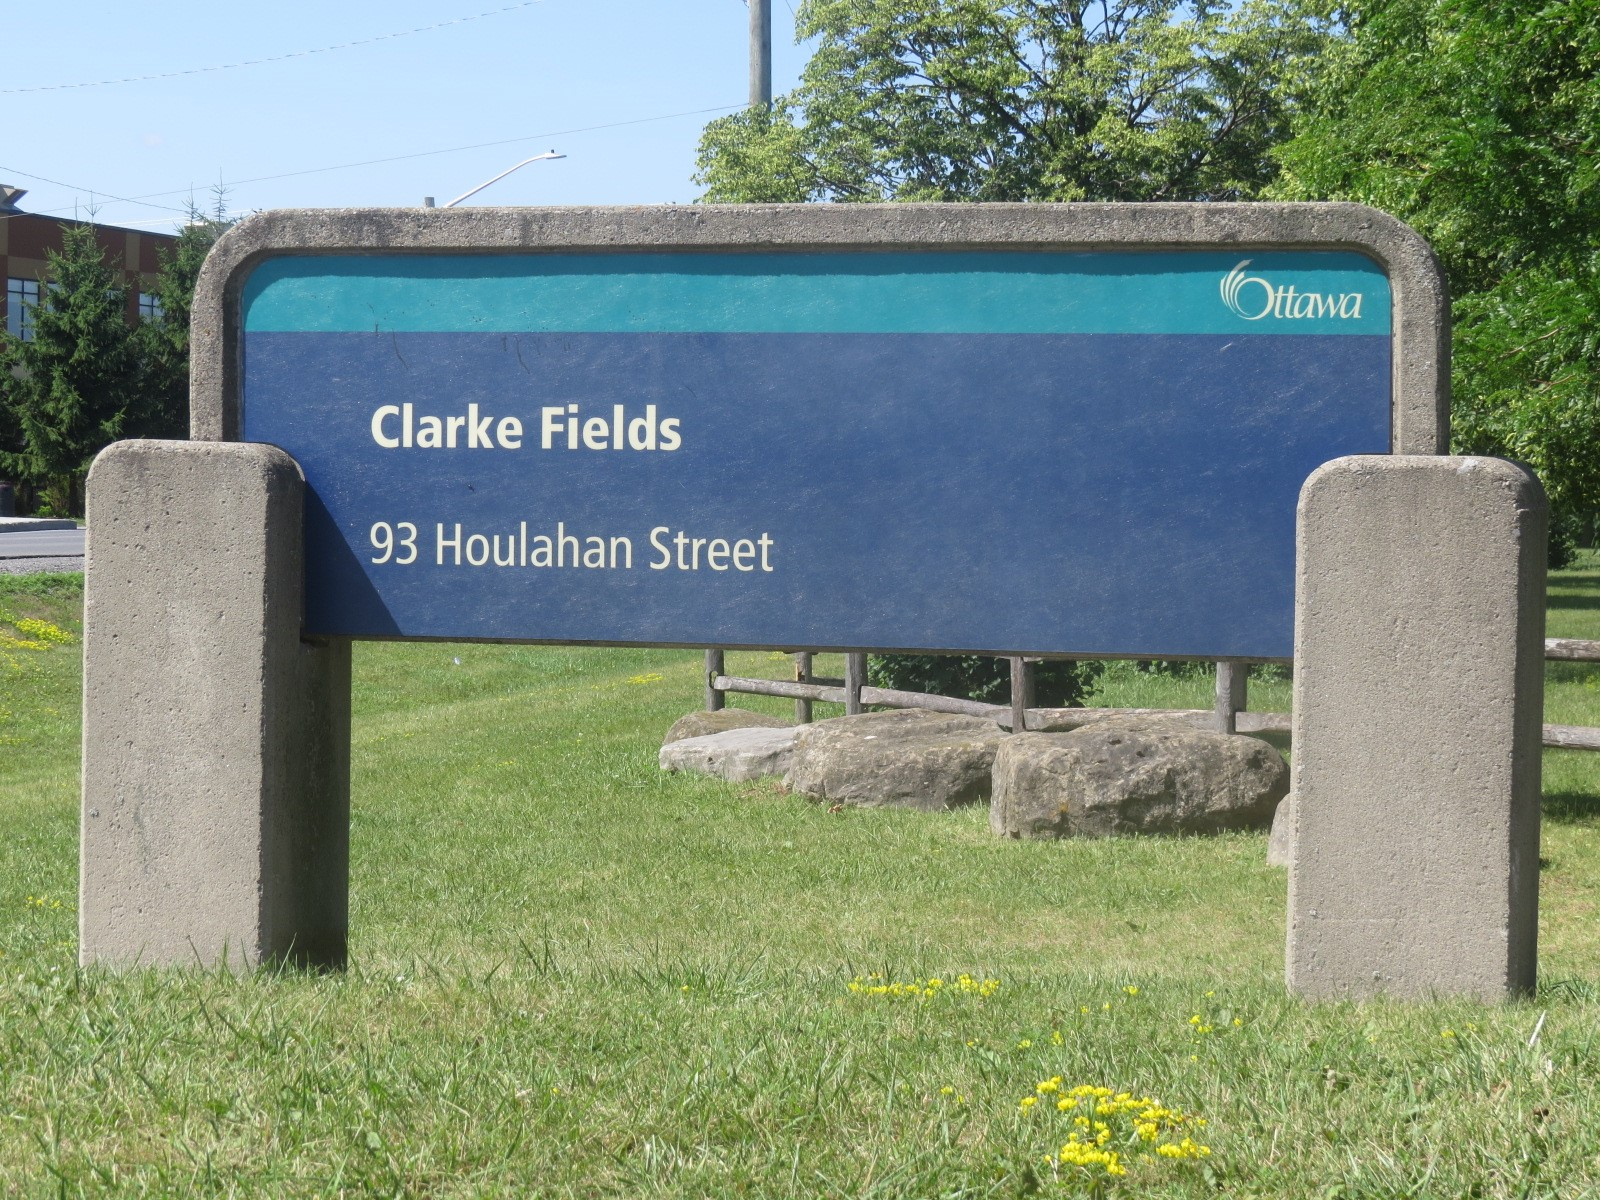 Clarke Fields Sign in Barrhaven, Ottawa, Canada